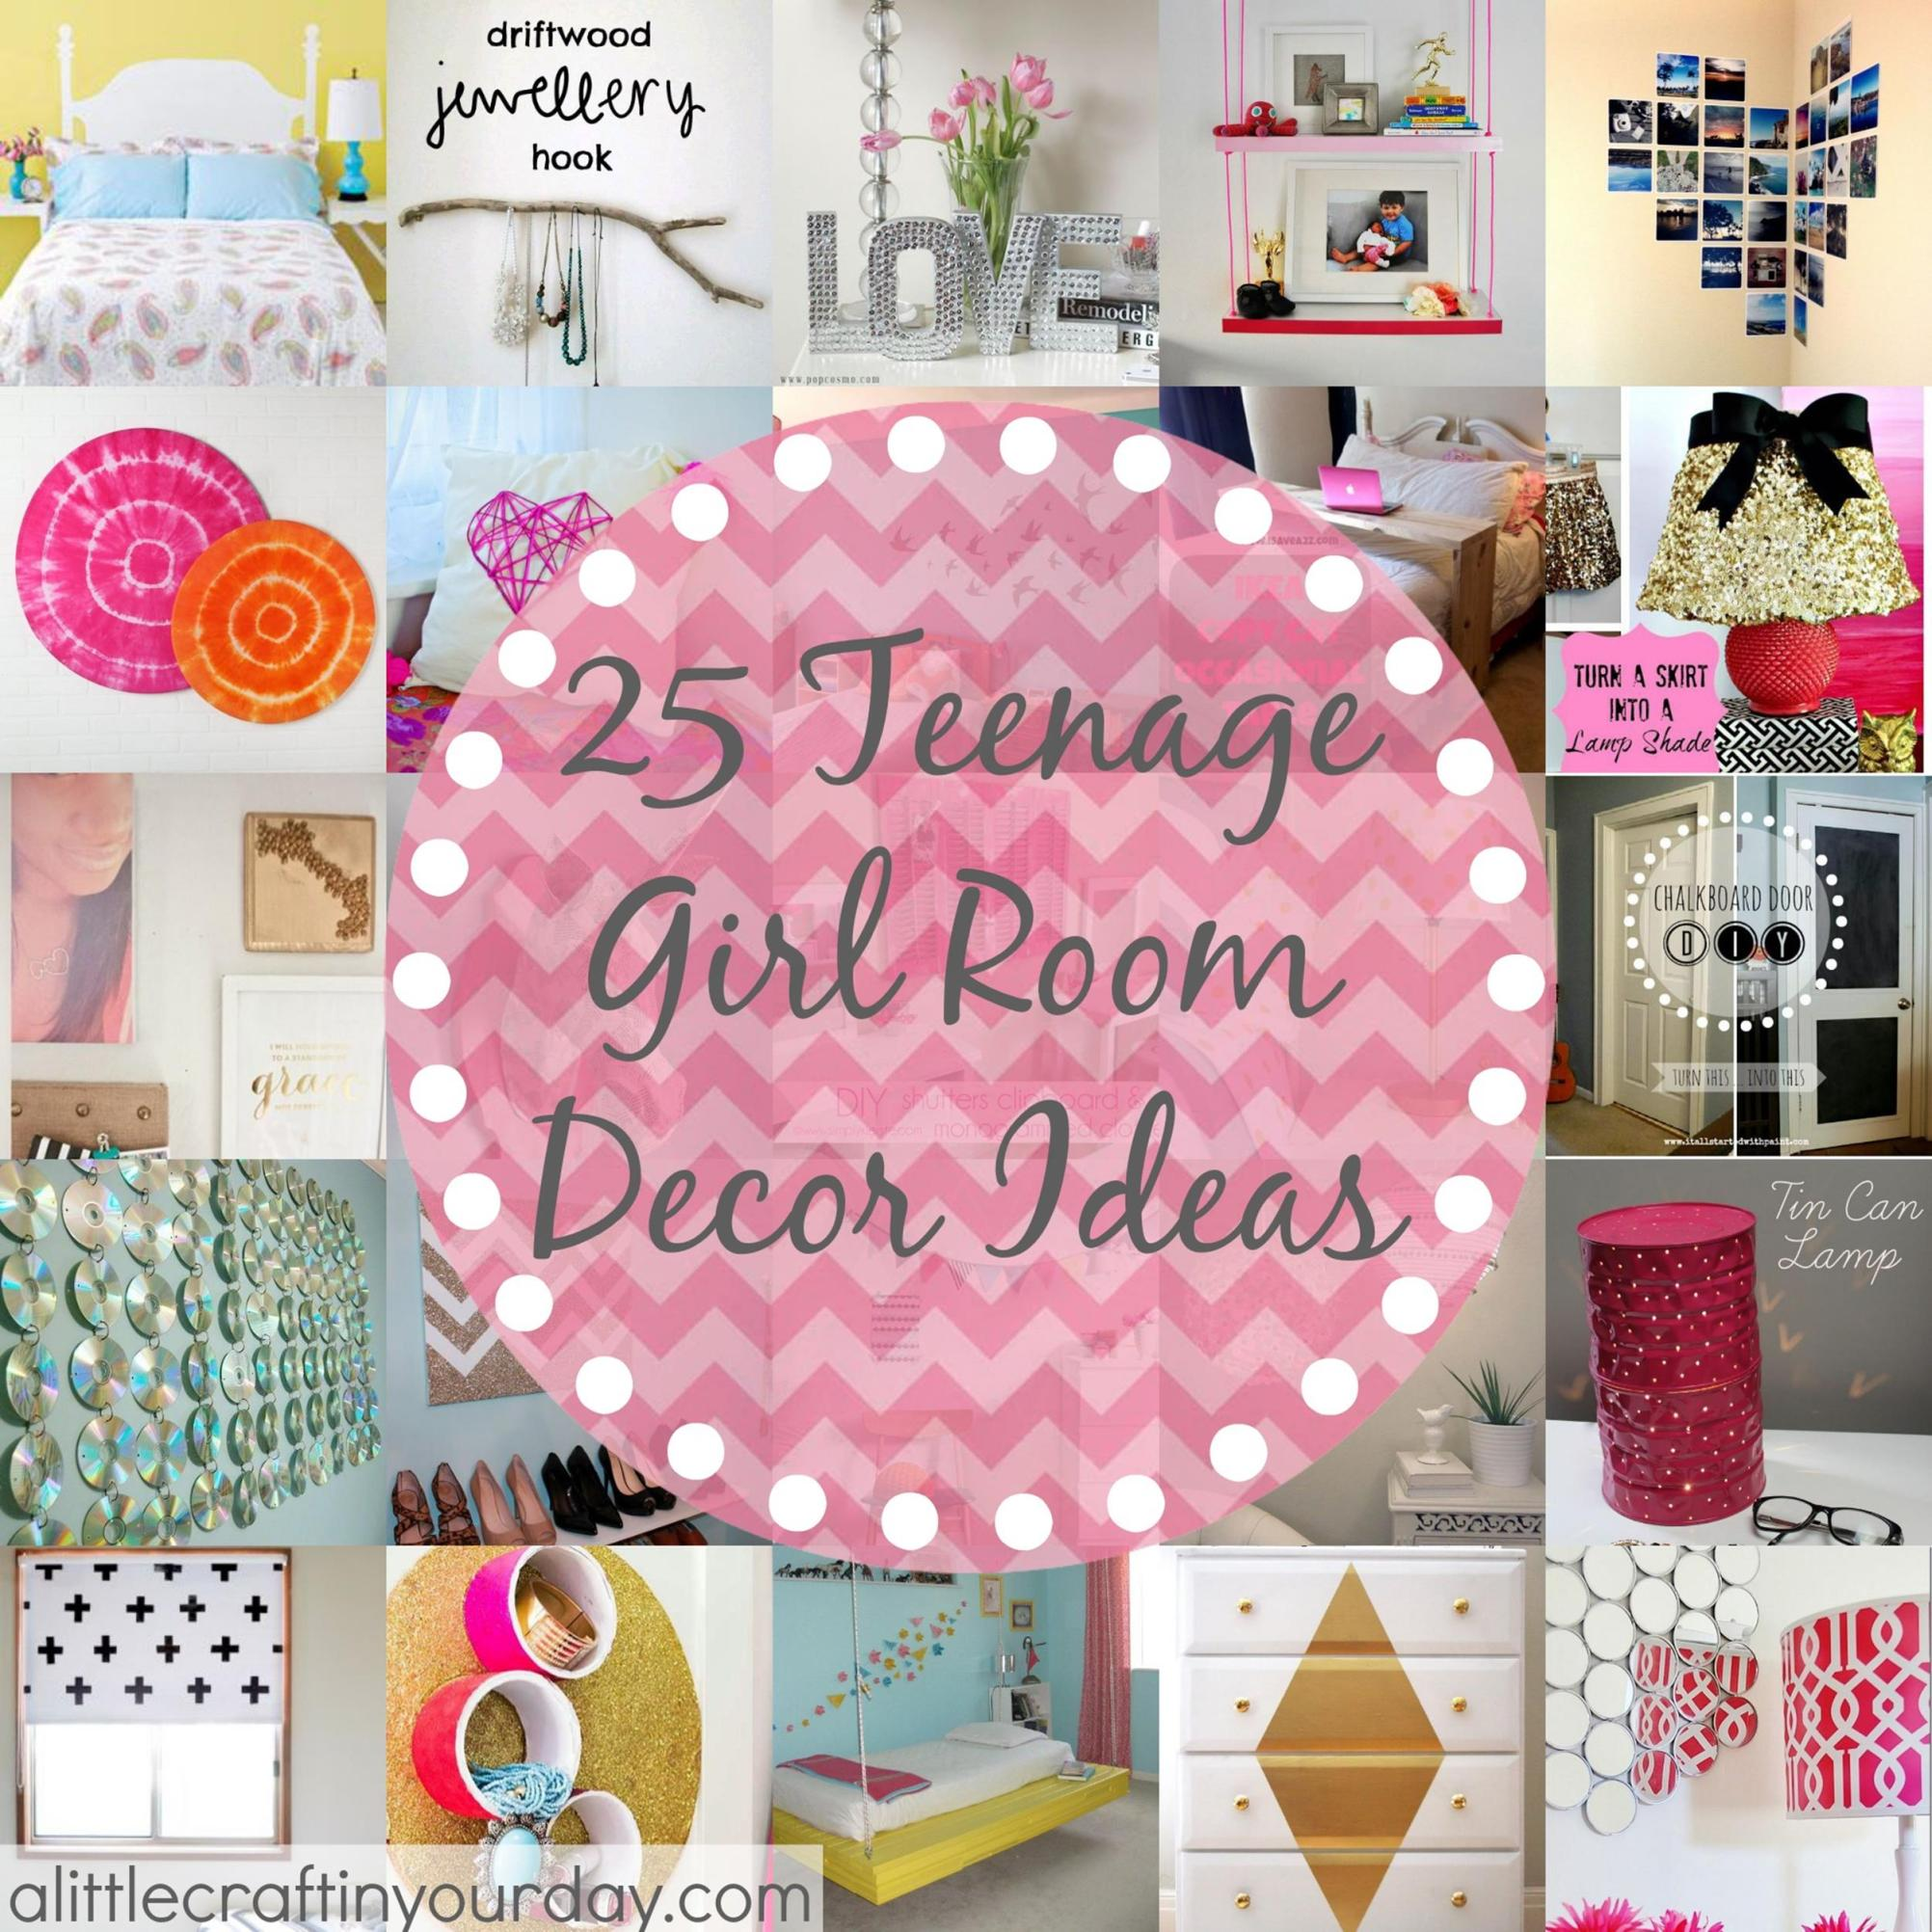 Perfect Bedroom Decorating Idea for Craft 39